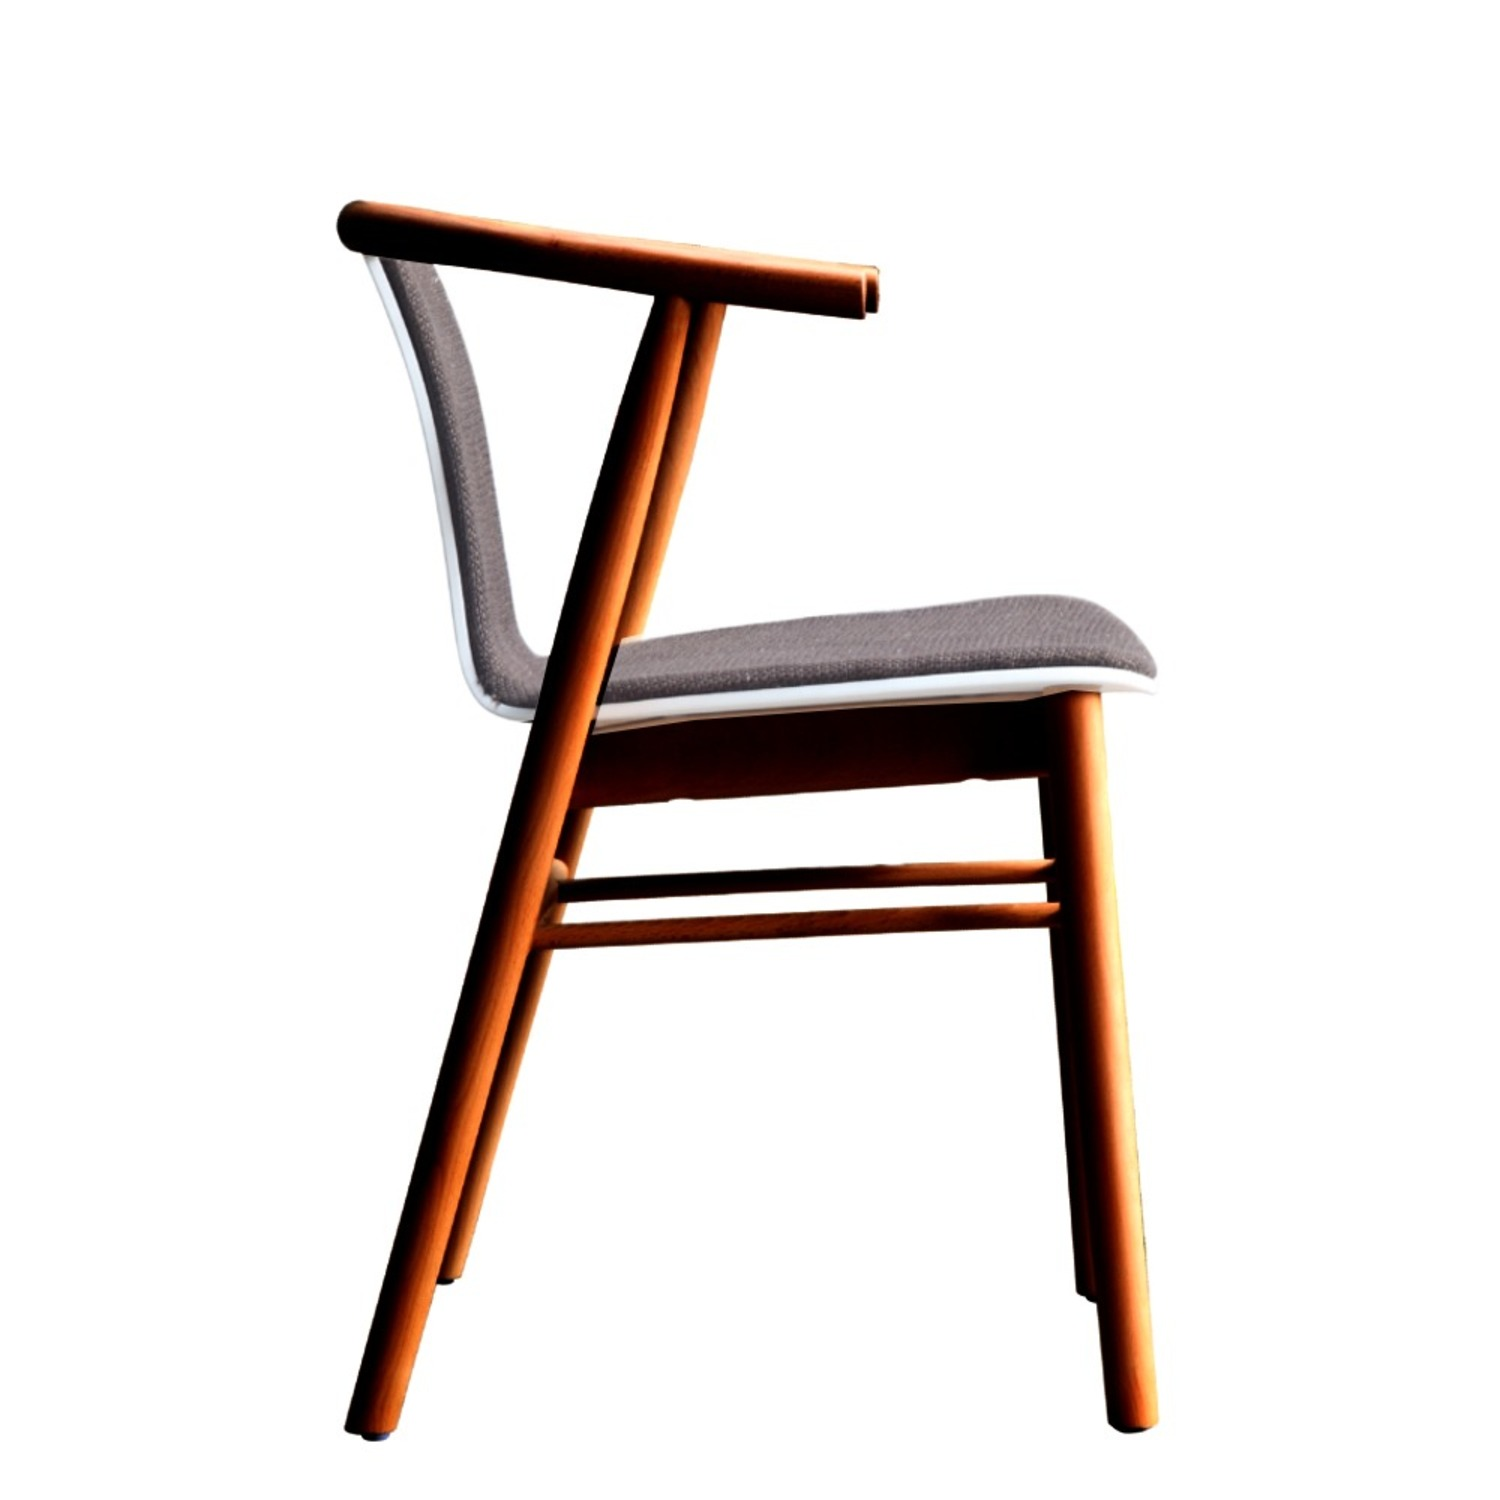 Side Chair In Walnut Wood Frame W/ Cotton Seat - image-1